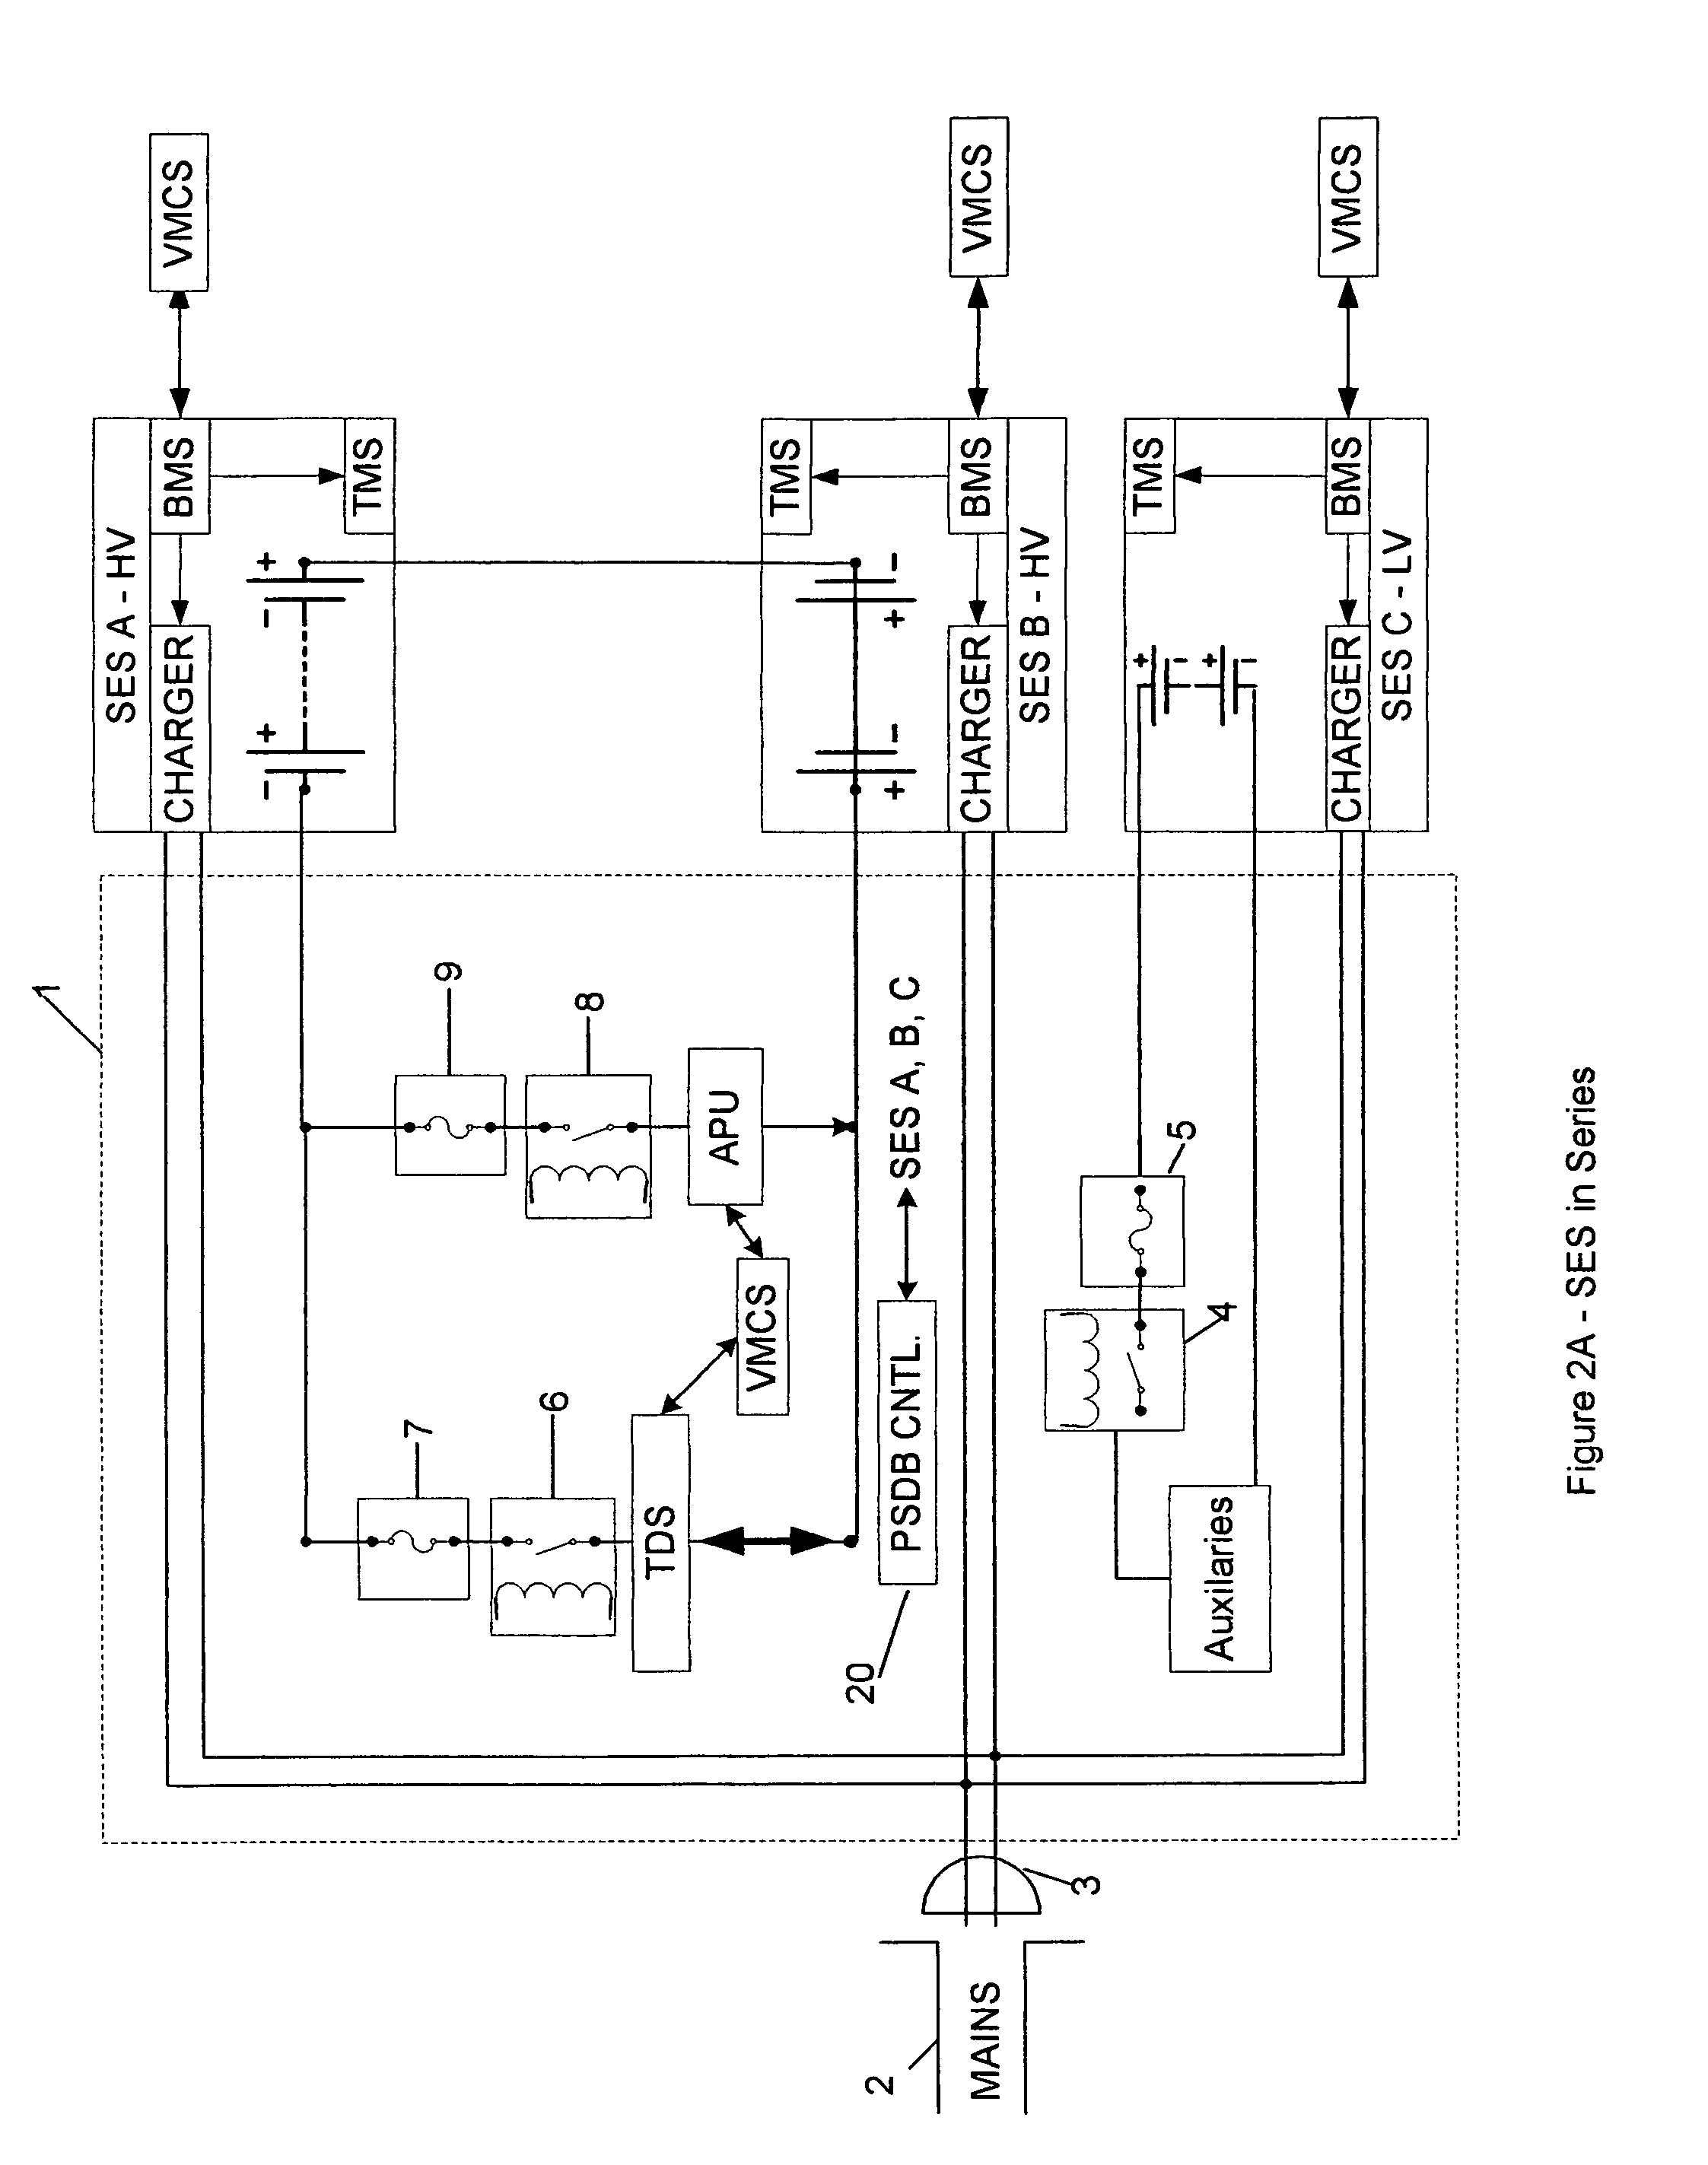 Startrans Bus Wiring Diagrams 29 Diagram Images 2010 Kenworth Schematic Us07830117 20101109 D00002 Bluebird Blue Bird School